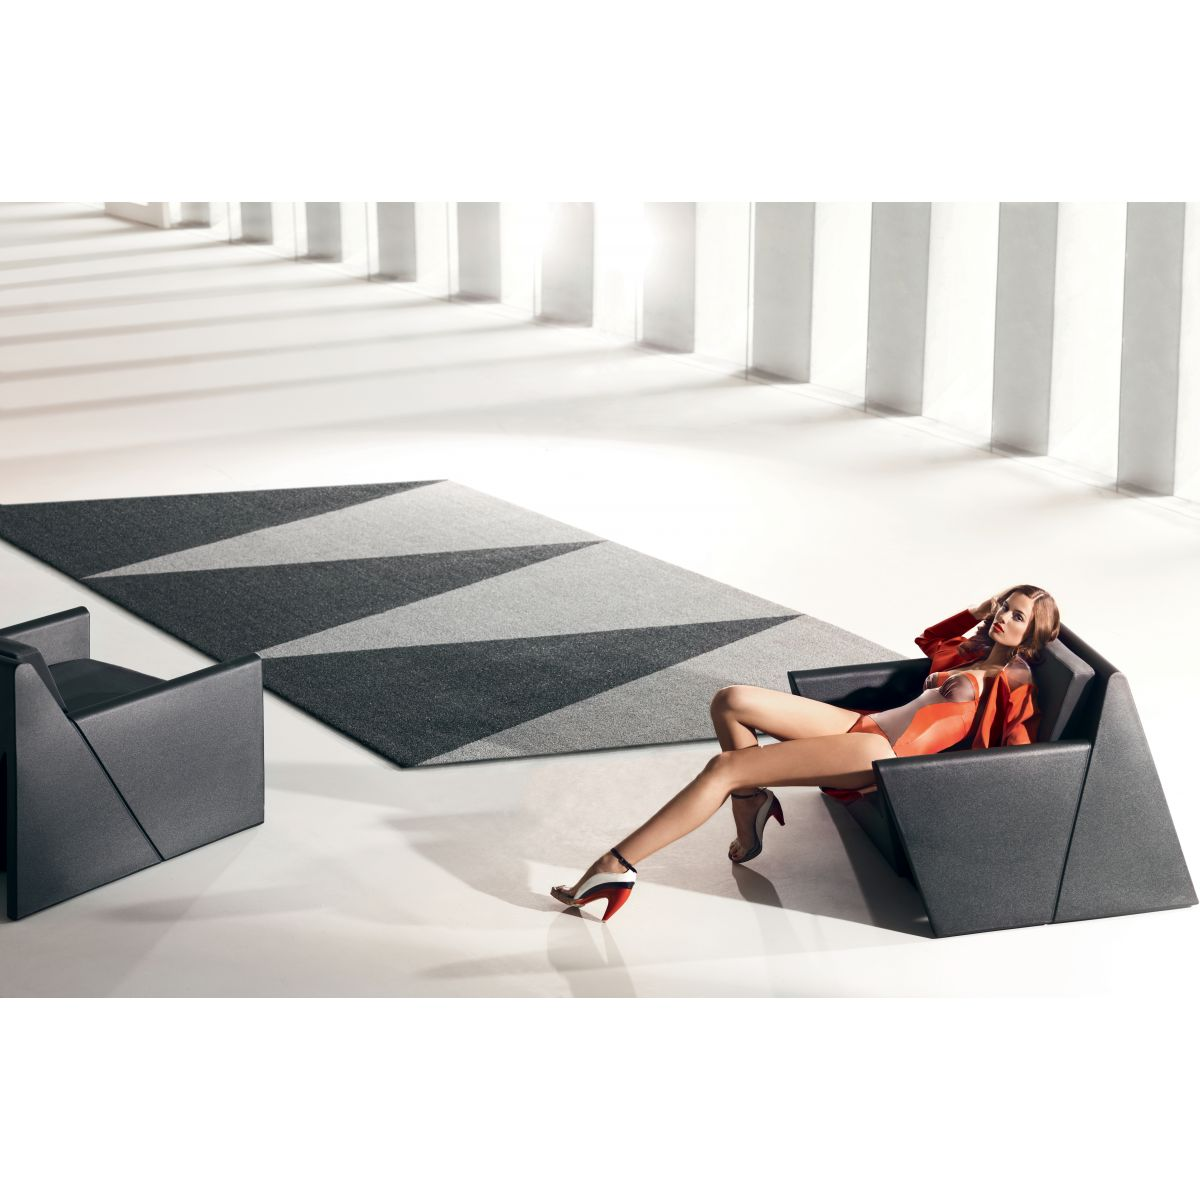 Tapis contemporain design overlap vondom zendart design for Interieur exterieur